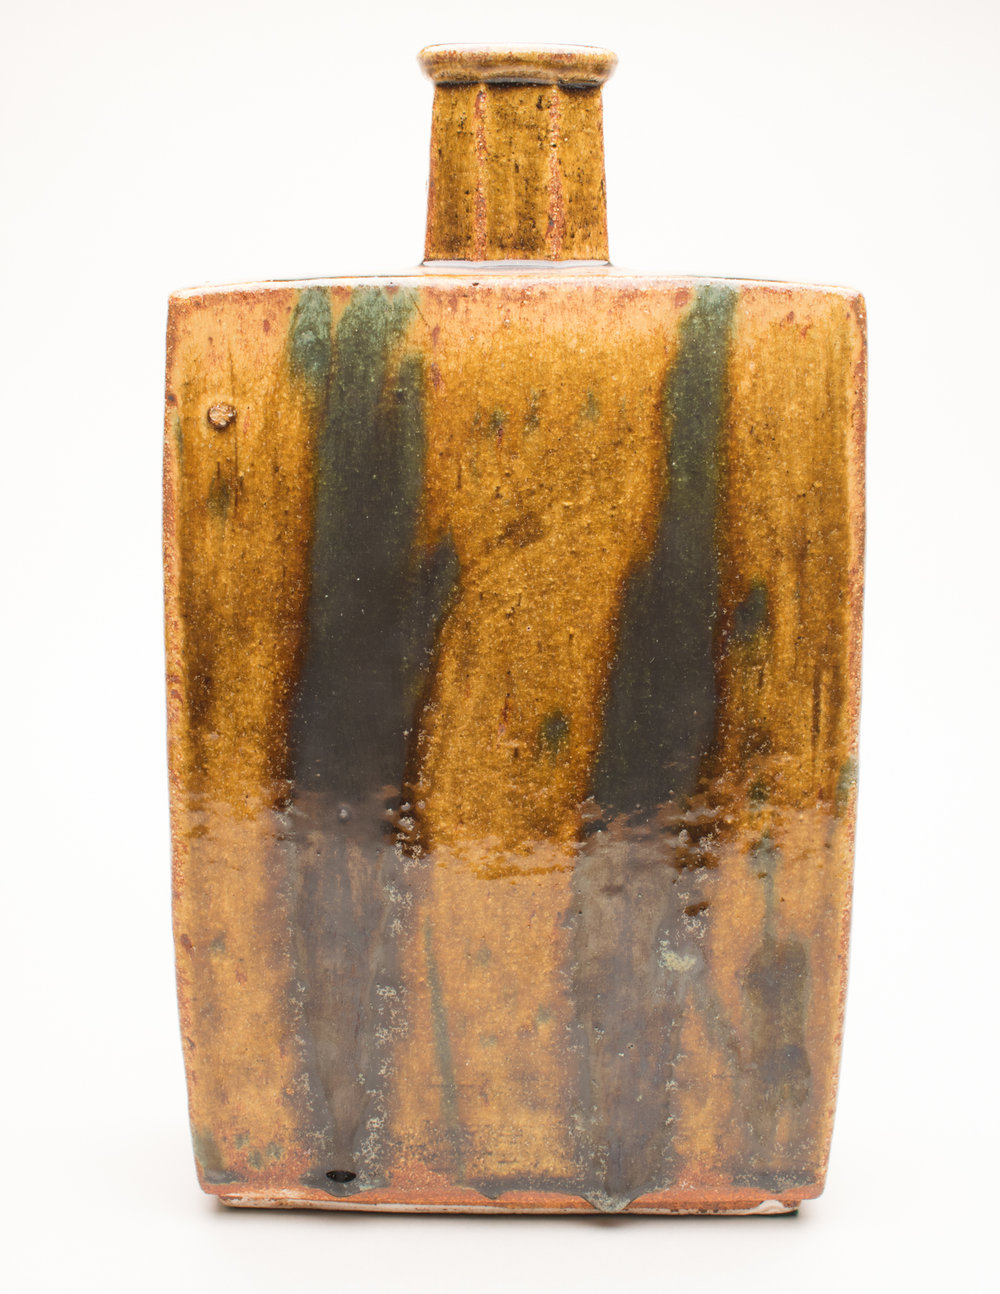 William Marshall slab bottle vase